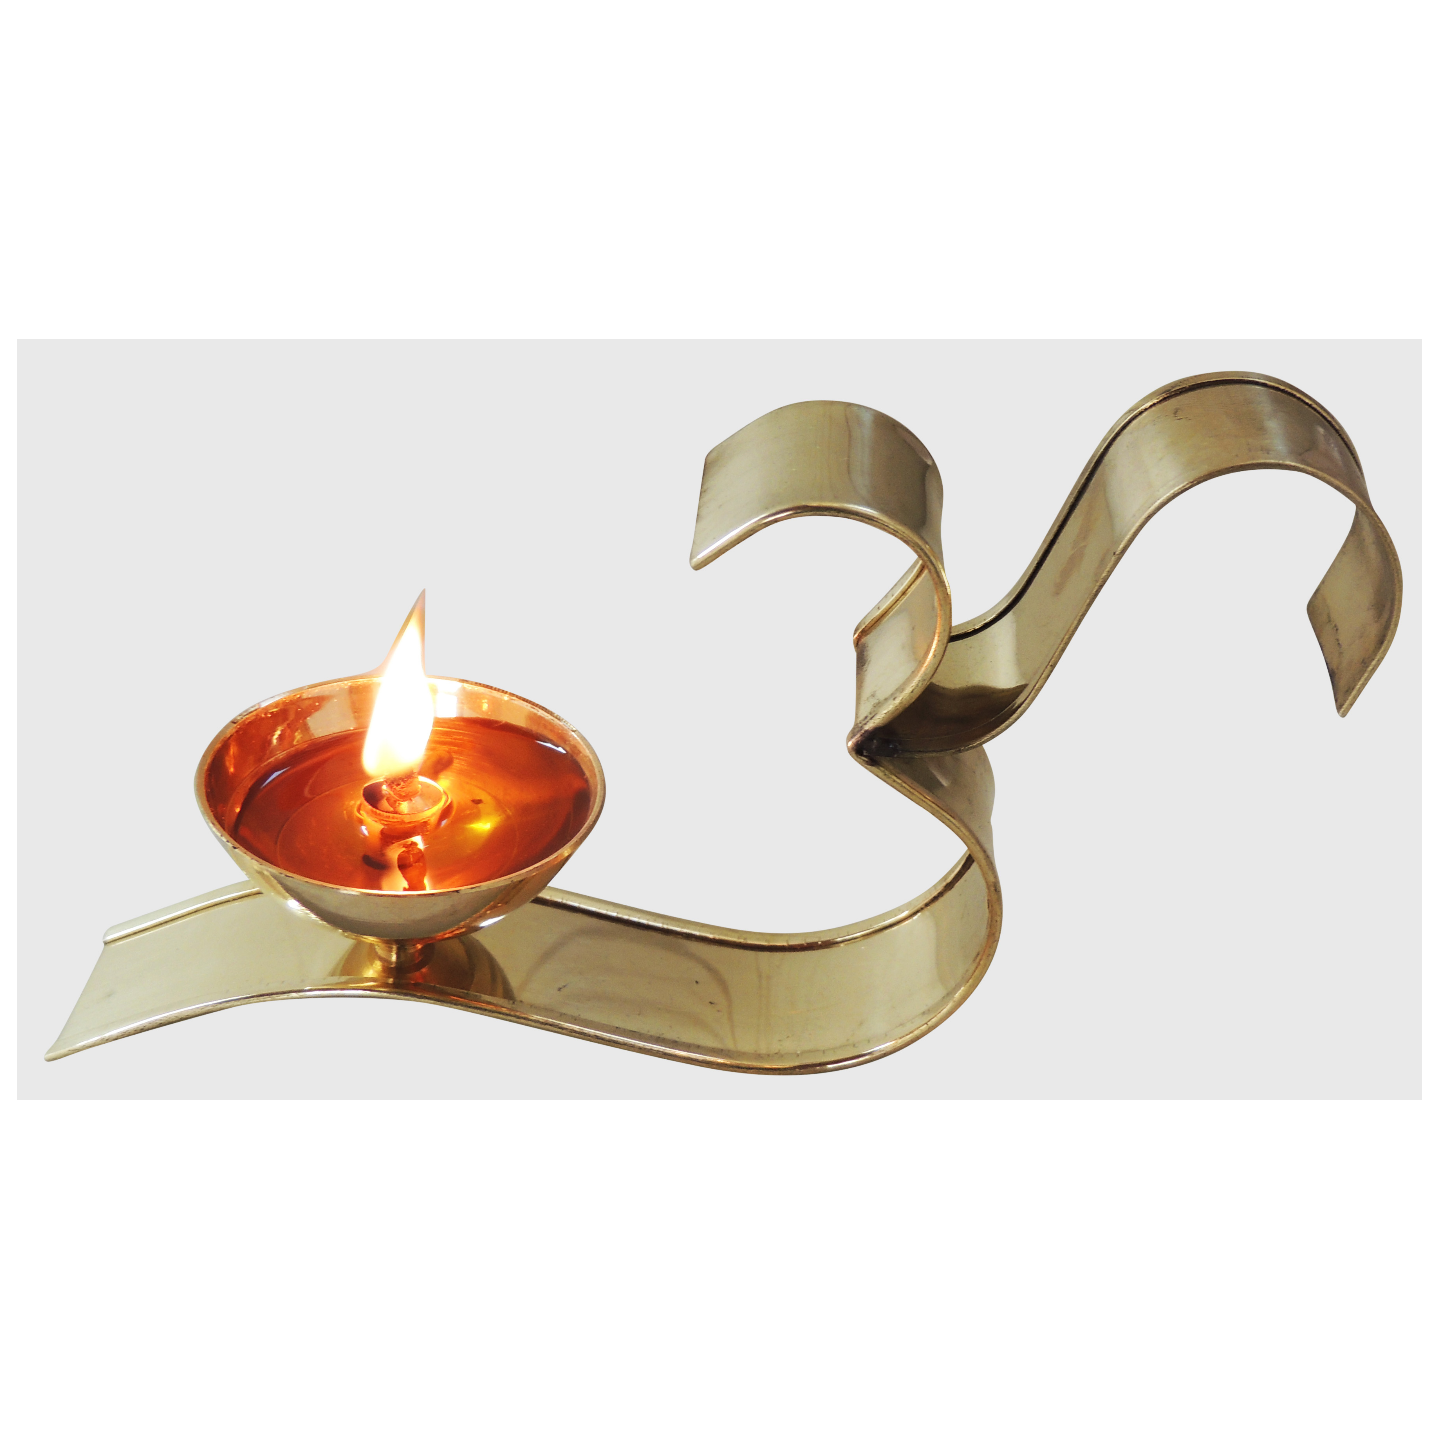 Brass Om With Attached Deepak - 3 Inch, No. 2,  Z489 B